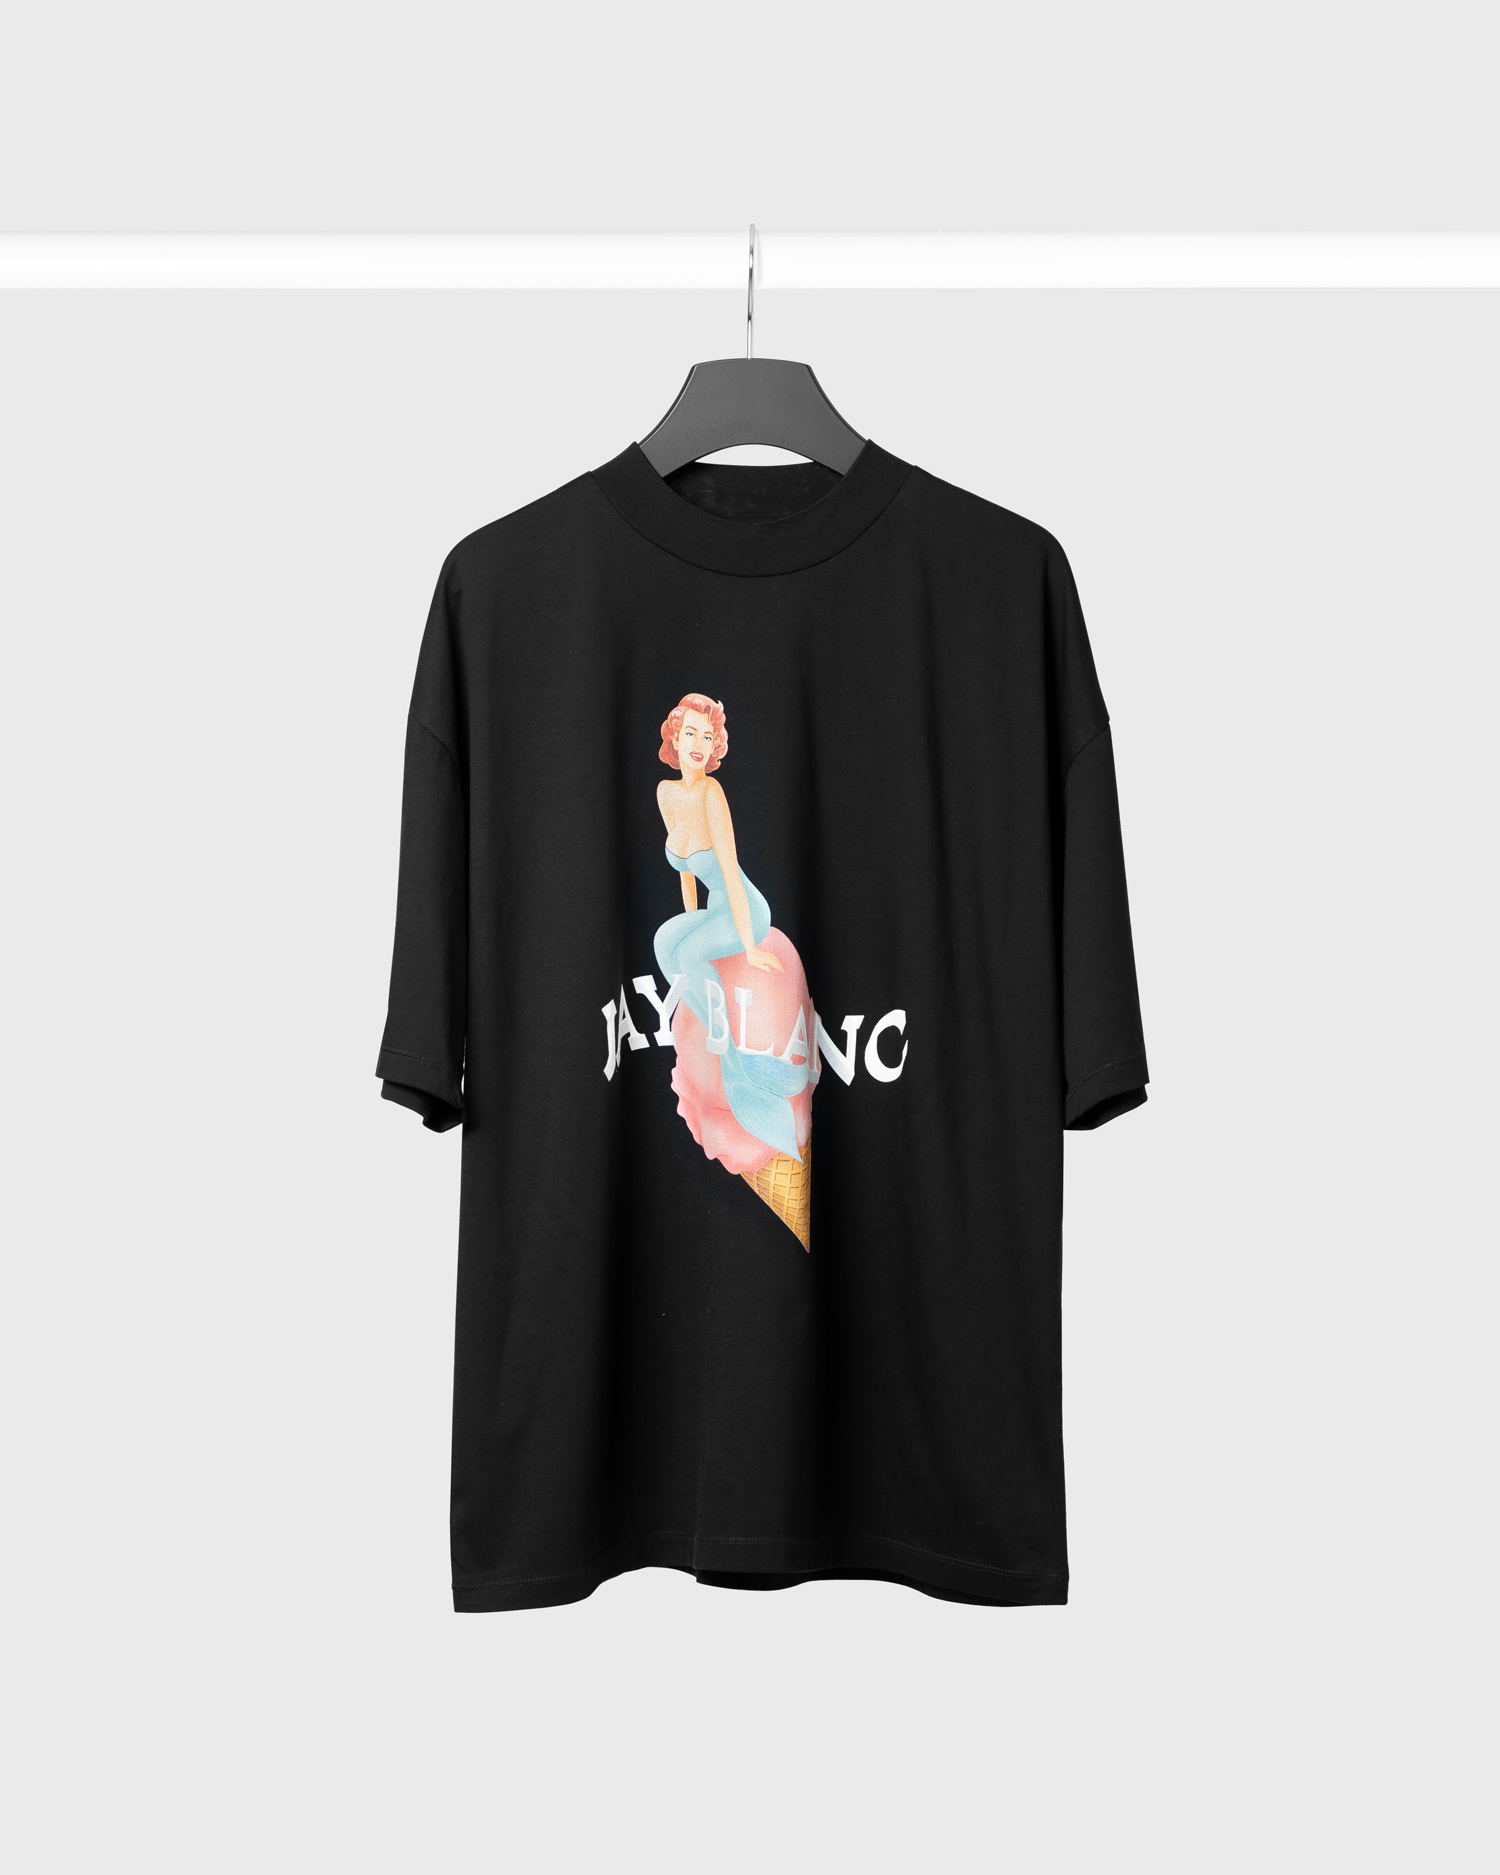 Oversized black t-shirt with ice cream print by jay blanc made in berlin